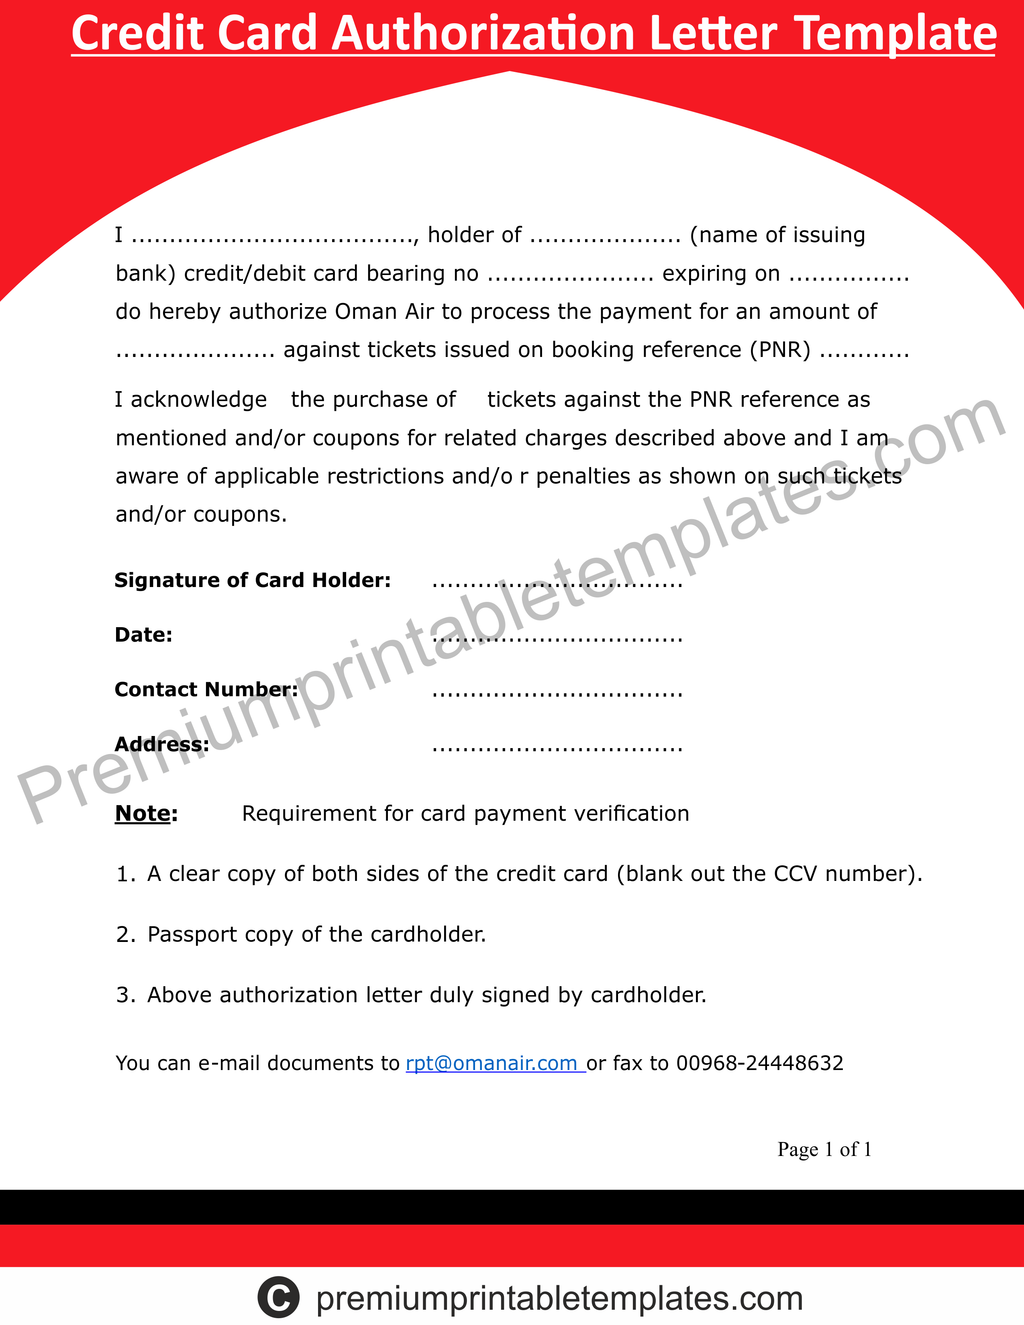 Credit Card Authorization Letter Templates